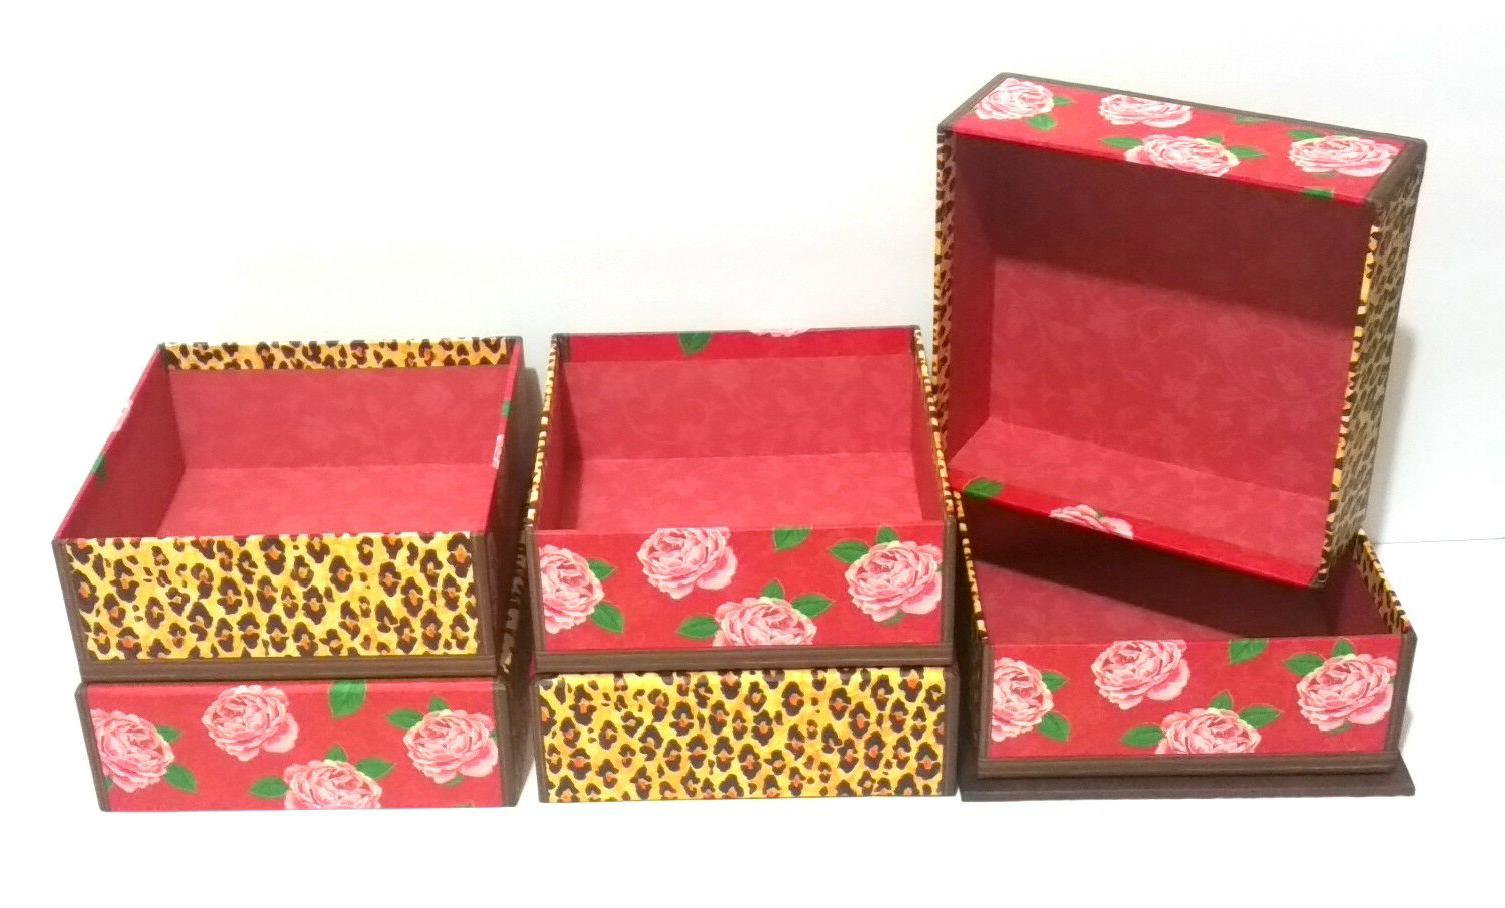 Decorative and Roses Print Unique Box, Punch Studio